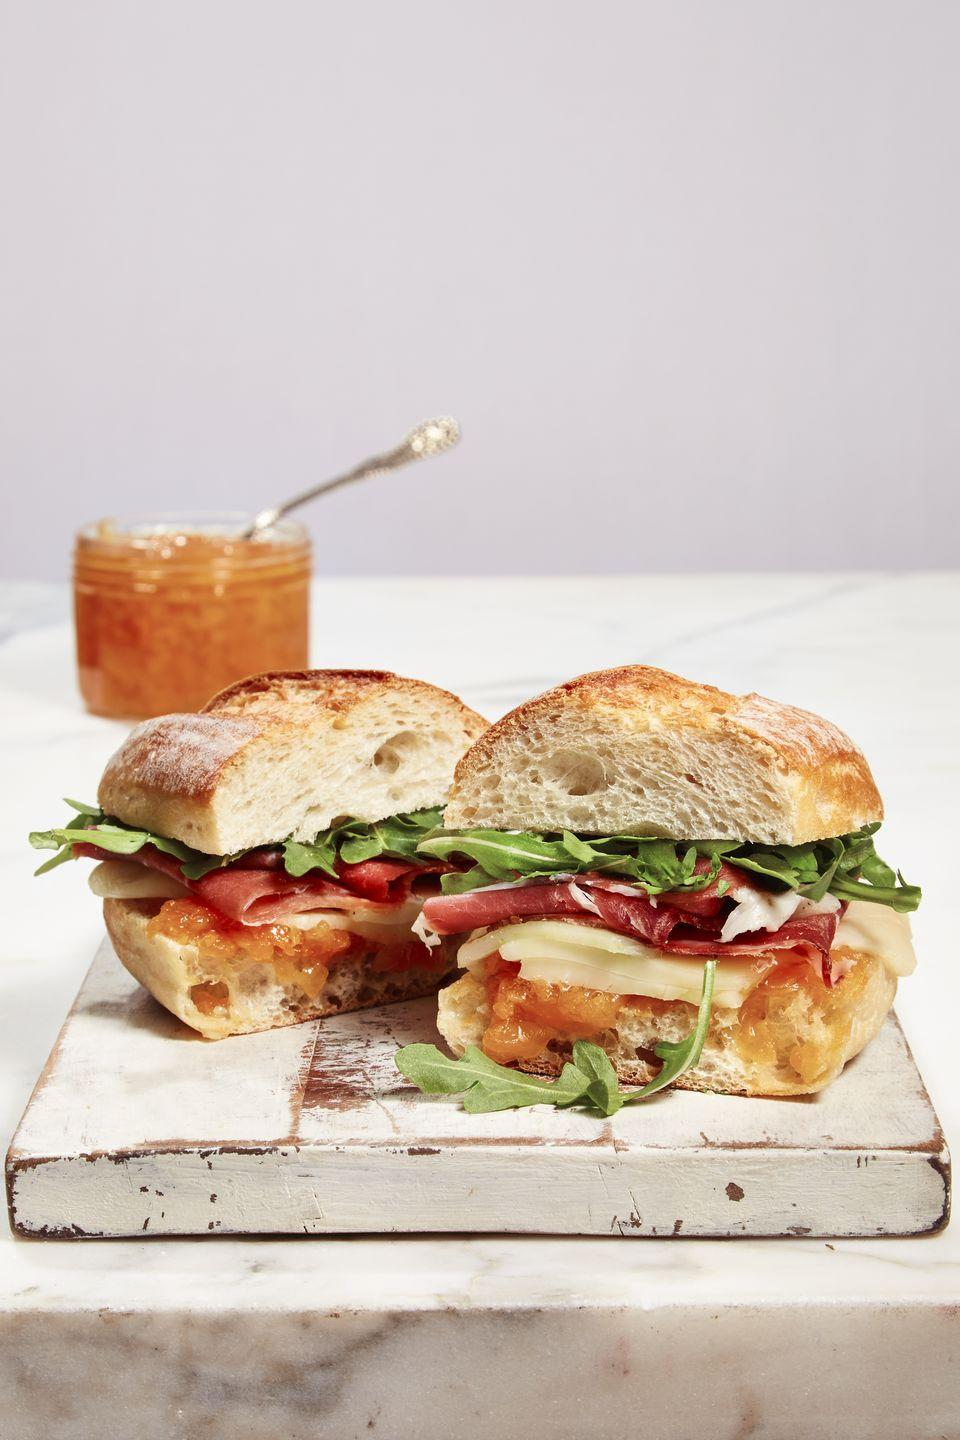 """<p>Meet the MVP of sandwiches — layers of fresh arugula, salty prosciutto, melty cheese and sweet, homemade <a href=""""https://www.goodhousekeeping.com/food-recipes/a39847/peach-honey-jam-recipe/"""" rel=""""nofollow noopener"""" target=""""_blank"""" data-ylk=""""slk:jam"""" class=""""link rapid-noclick-resp"""">jam</a> between crispy baguette slices.</p><p><a href=""""https://www.goodhousekeeping.com/food-recipes/a39853/prosciutto-melon-panini-recipe/"""" rel=""""nofollow noopener"""" target=""""_blank"""" data-ylk=""""slk:Get the recipe for Prosciutto-Melon Panini »"""" class=""""link rapid-noclick-resp""""><em>Get the recipe for Prosciutto-Melon Panini »</em></a> </p>"""